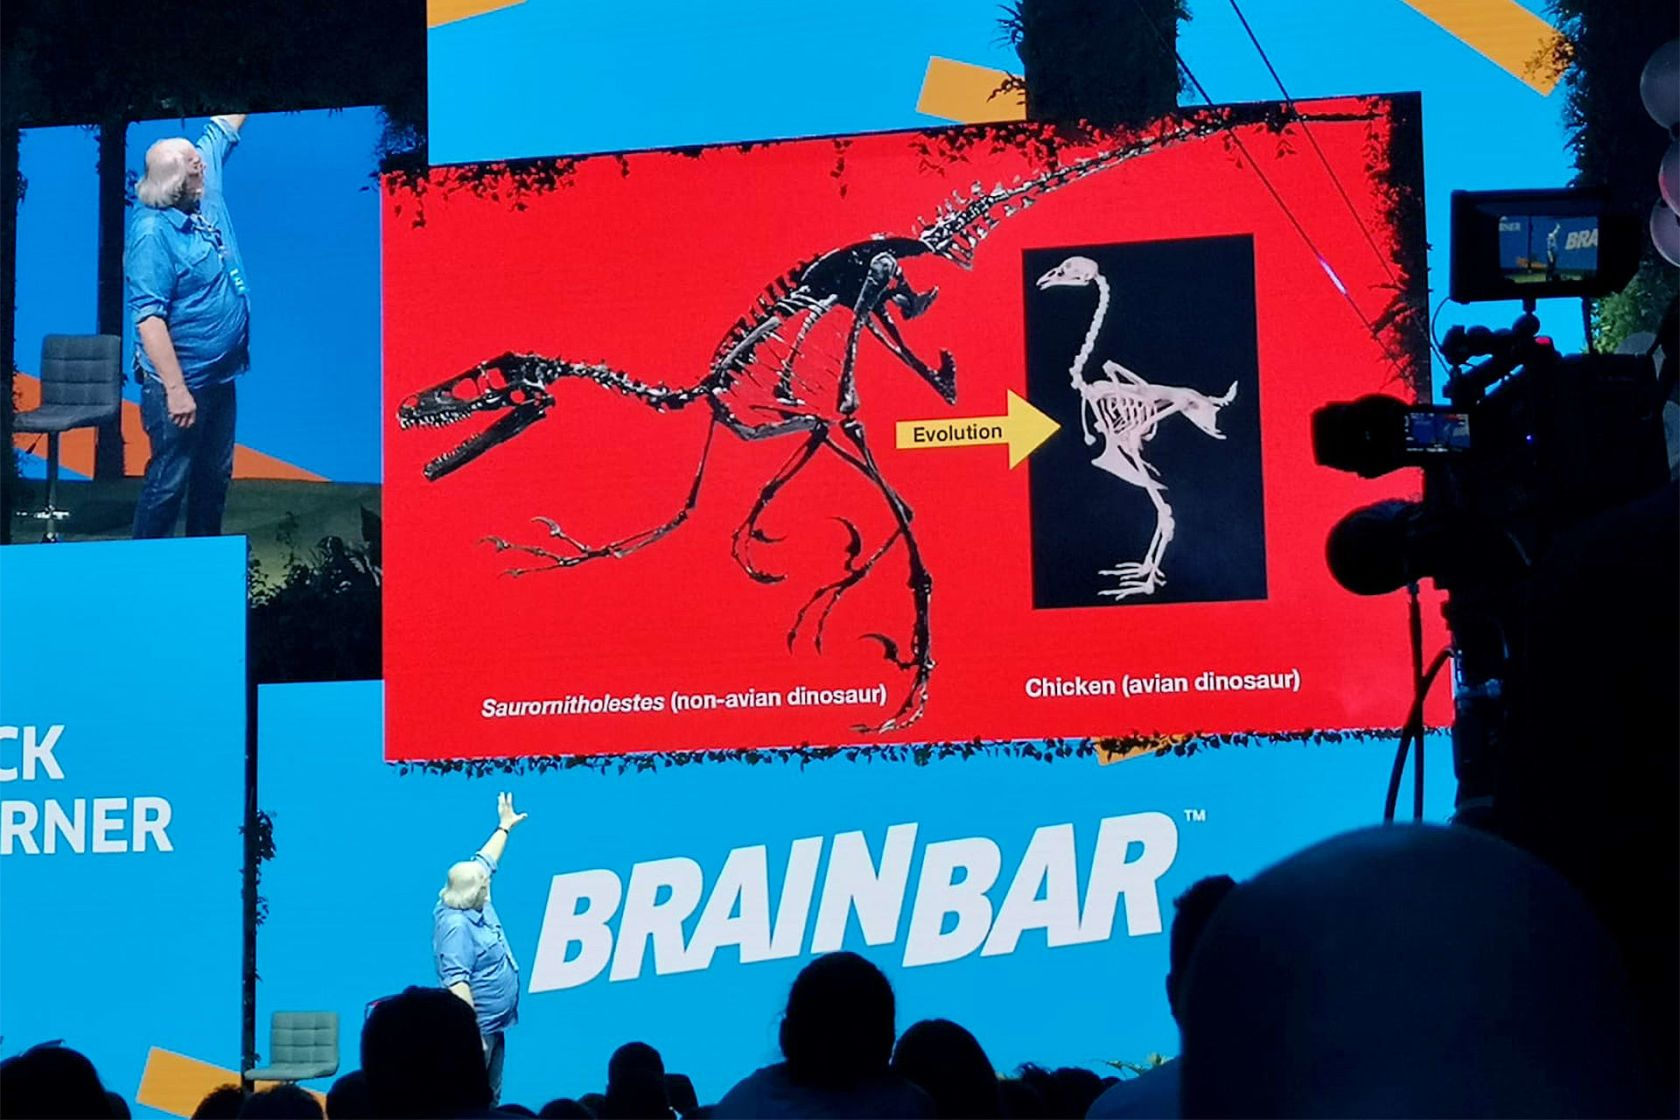 404 at Brain Bar: Dinosaurs and robots